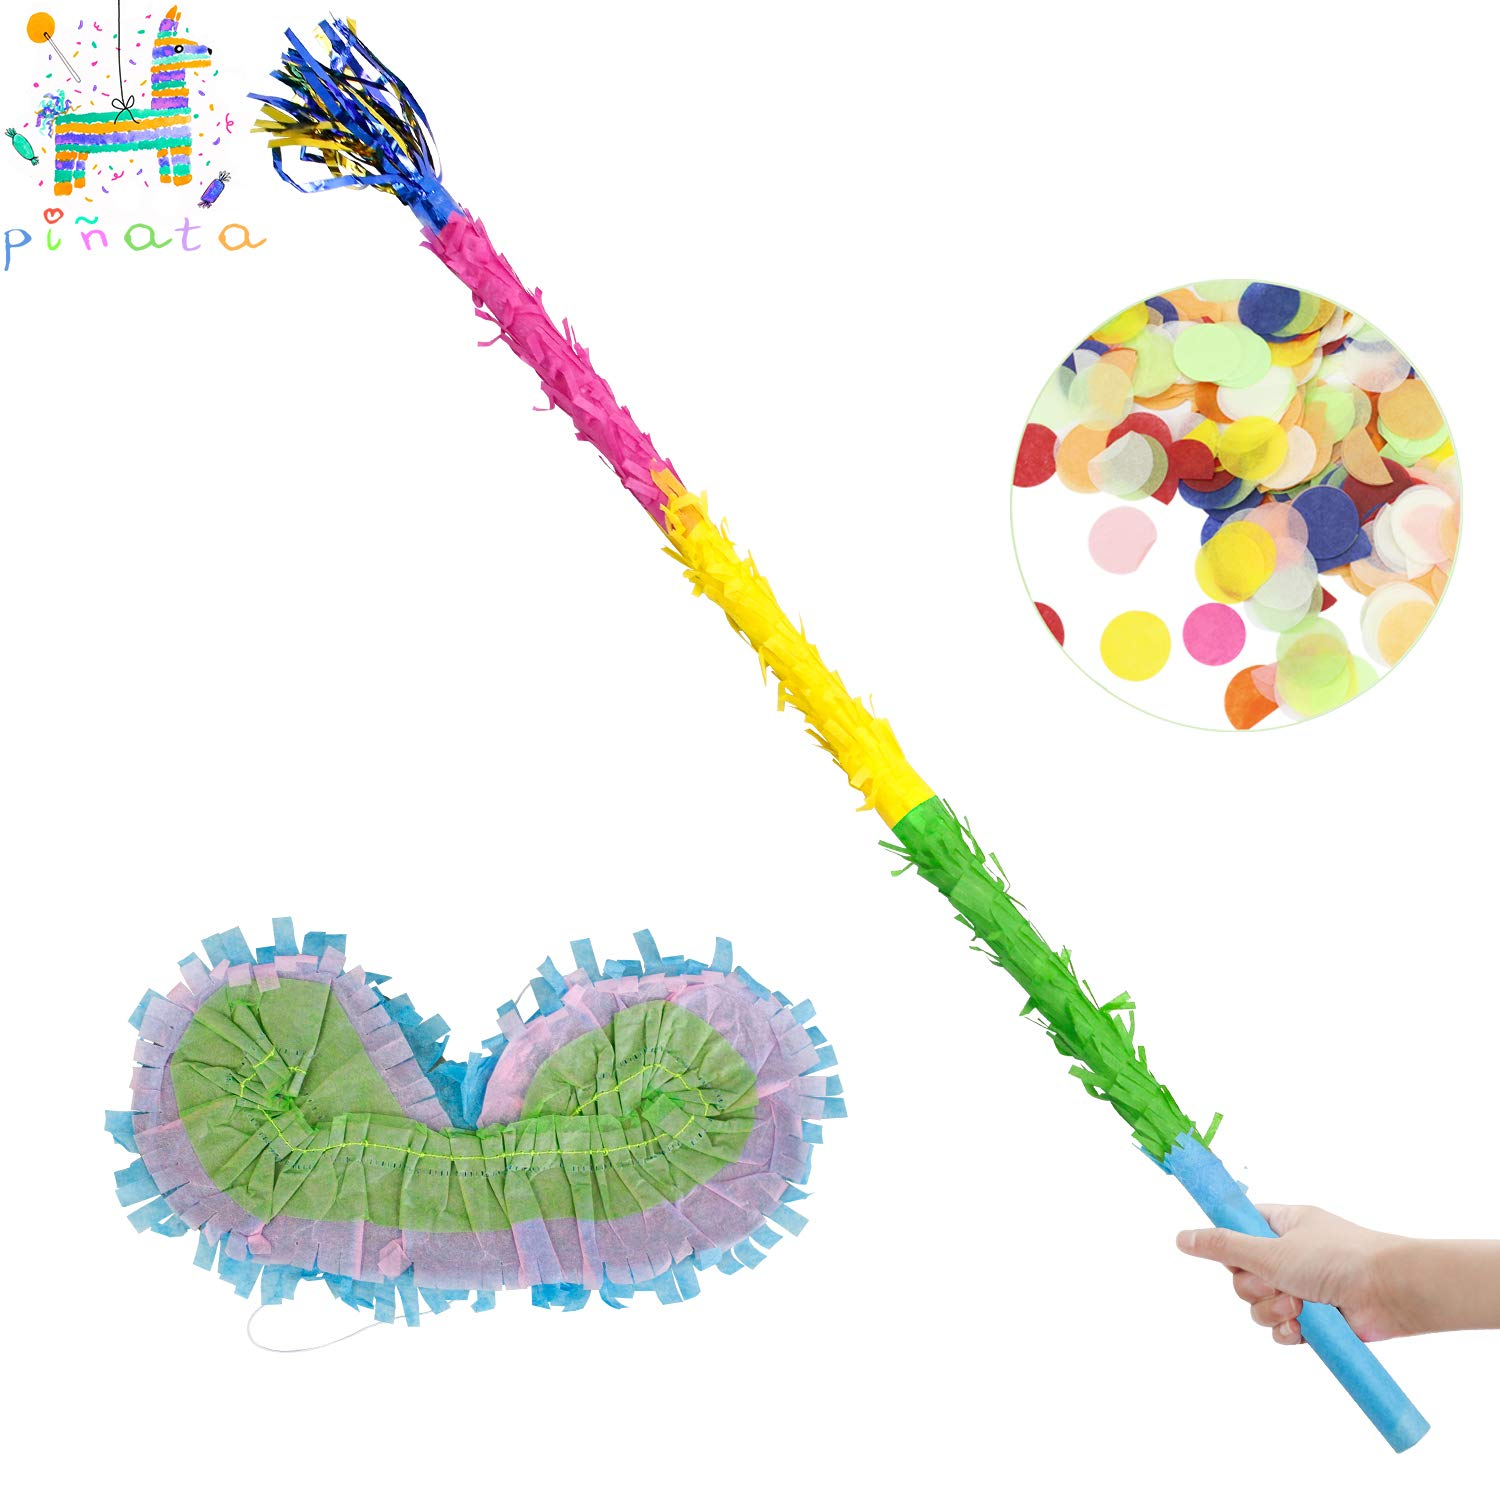 30.6'' Pinata Stick with Blindfold Confetti Set for Pinata Kids Birthday Anniversary Celebration Decorations Gaming Theme Pet Party Fiesta Supply by kaimei